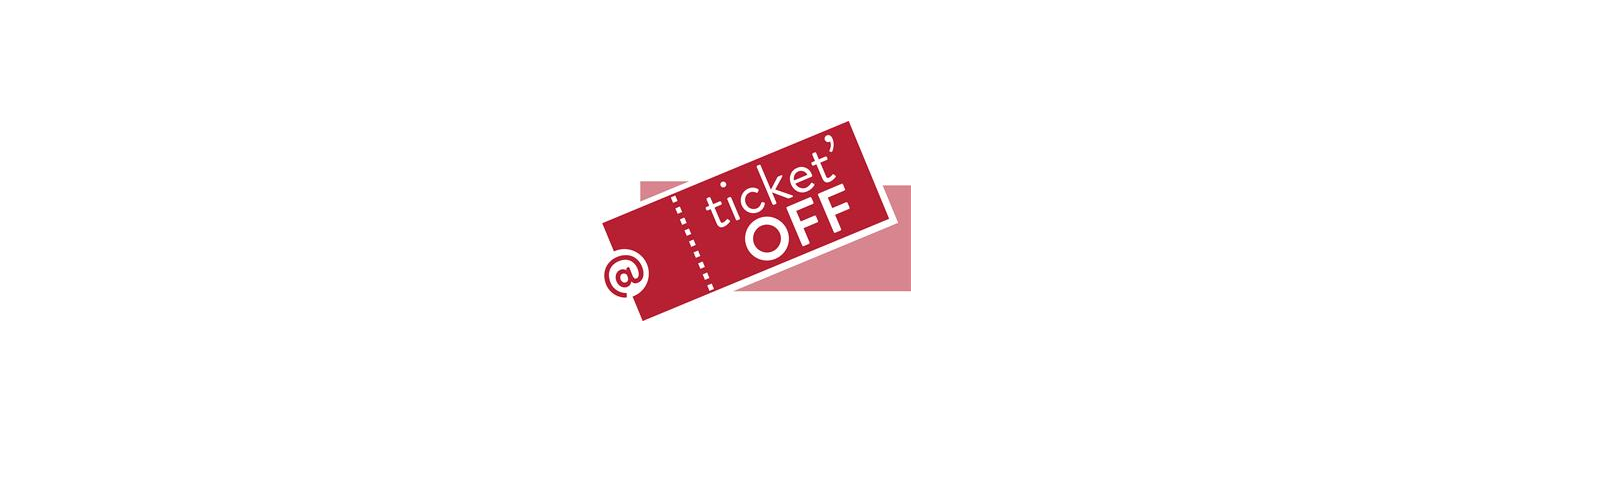 ticket-off